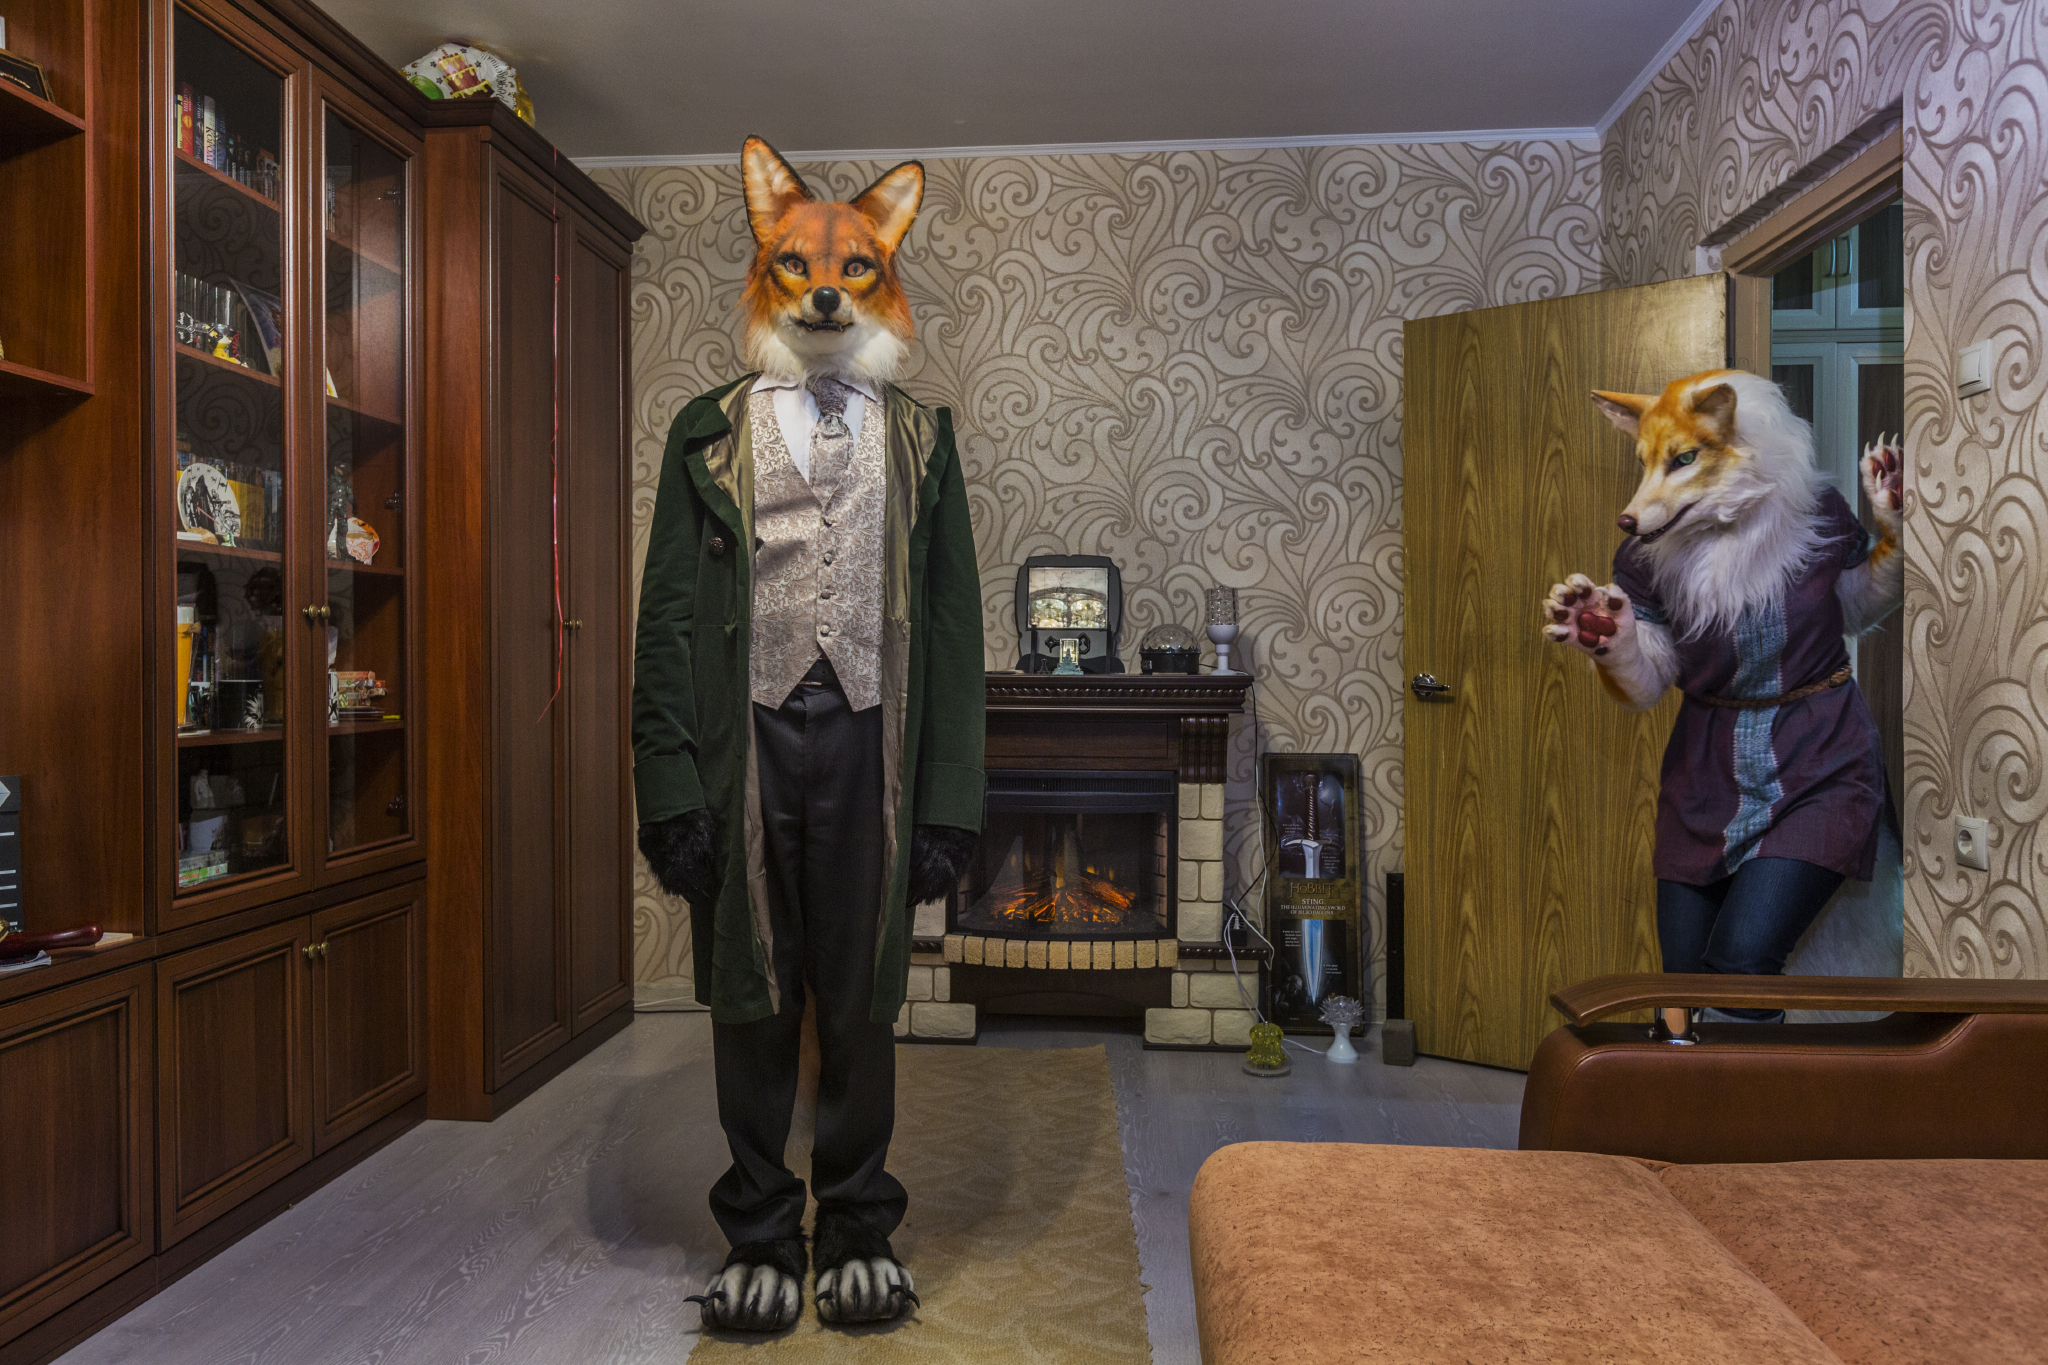 Alexander and Victoria Kylynin escape the everyday through cosplay in their suburban Moscow flat. The 28-year-old banker and 25-year-old interior designer own several animal outfits.  Zelenograd, Russia